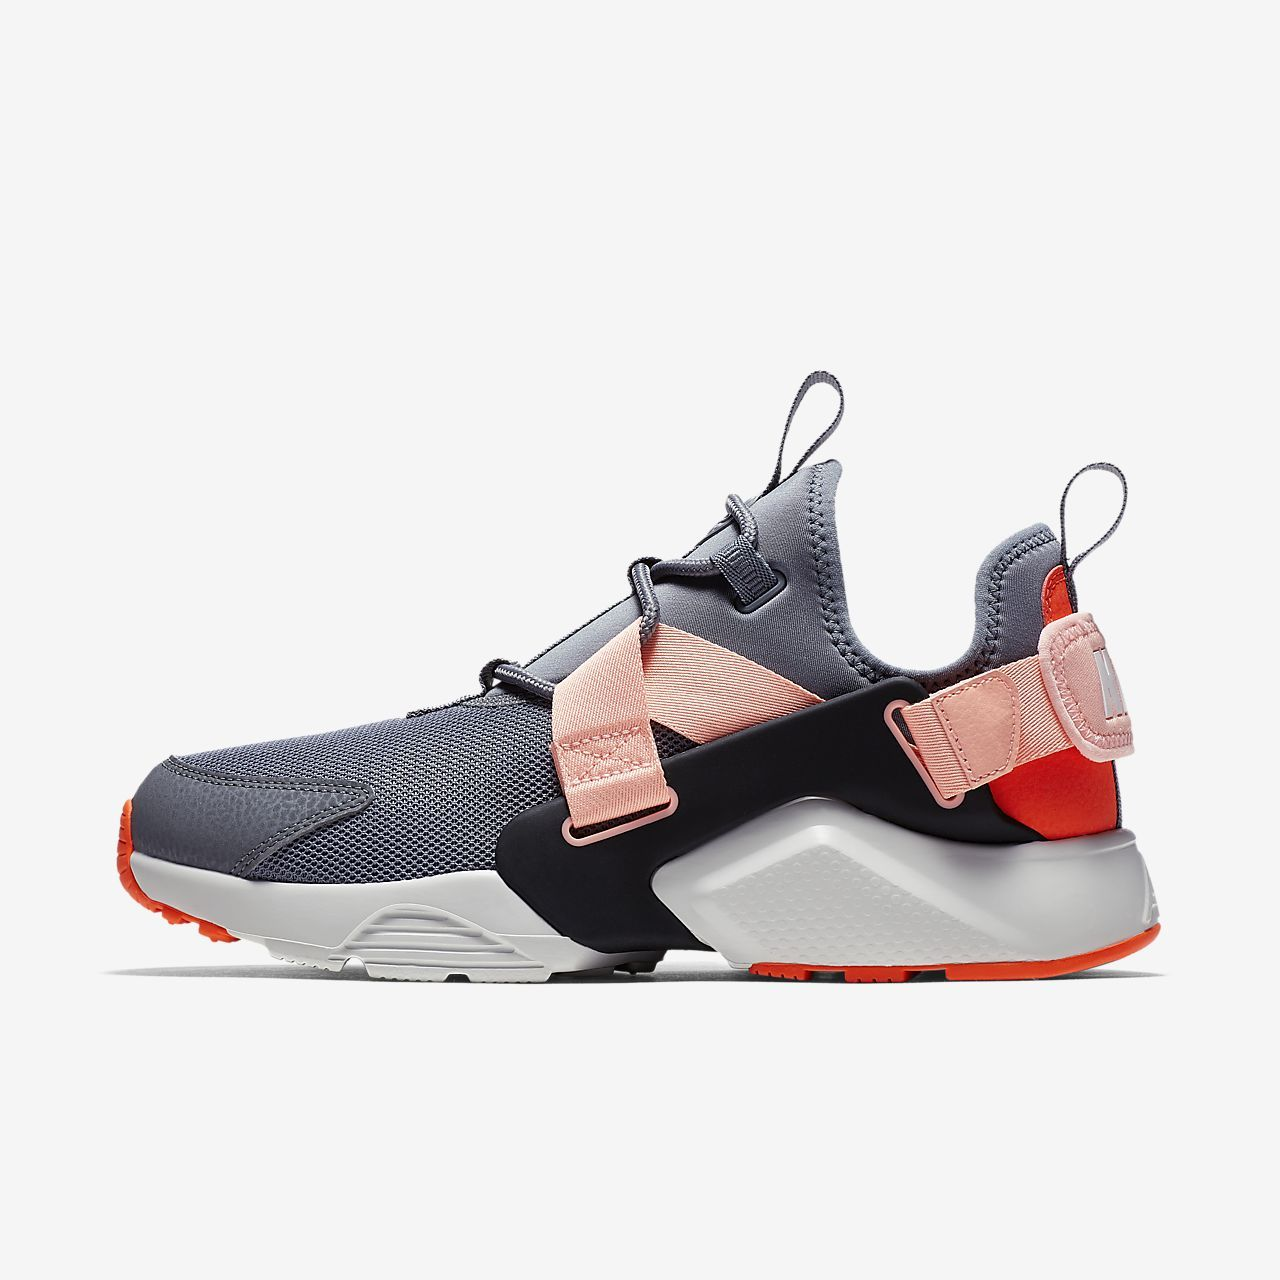 ac12bc281a Air Huarache City Low Women's Shoe in 2019 | nice nike sneakers ...